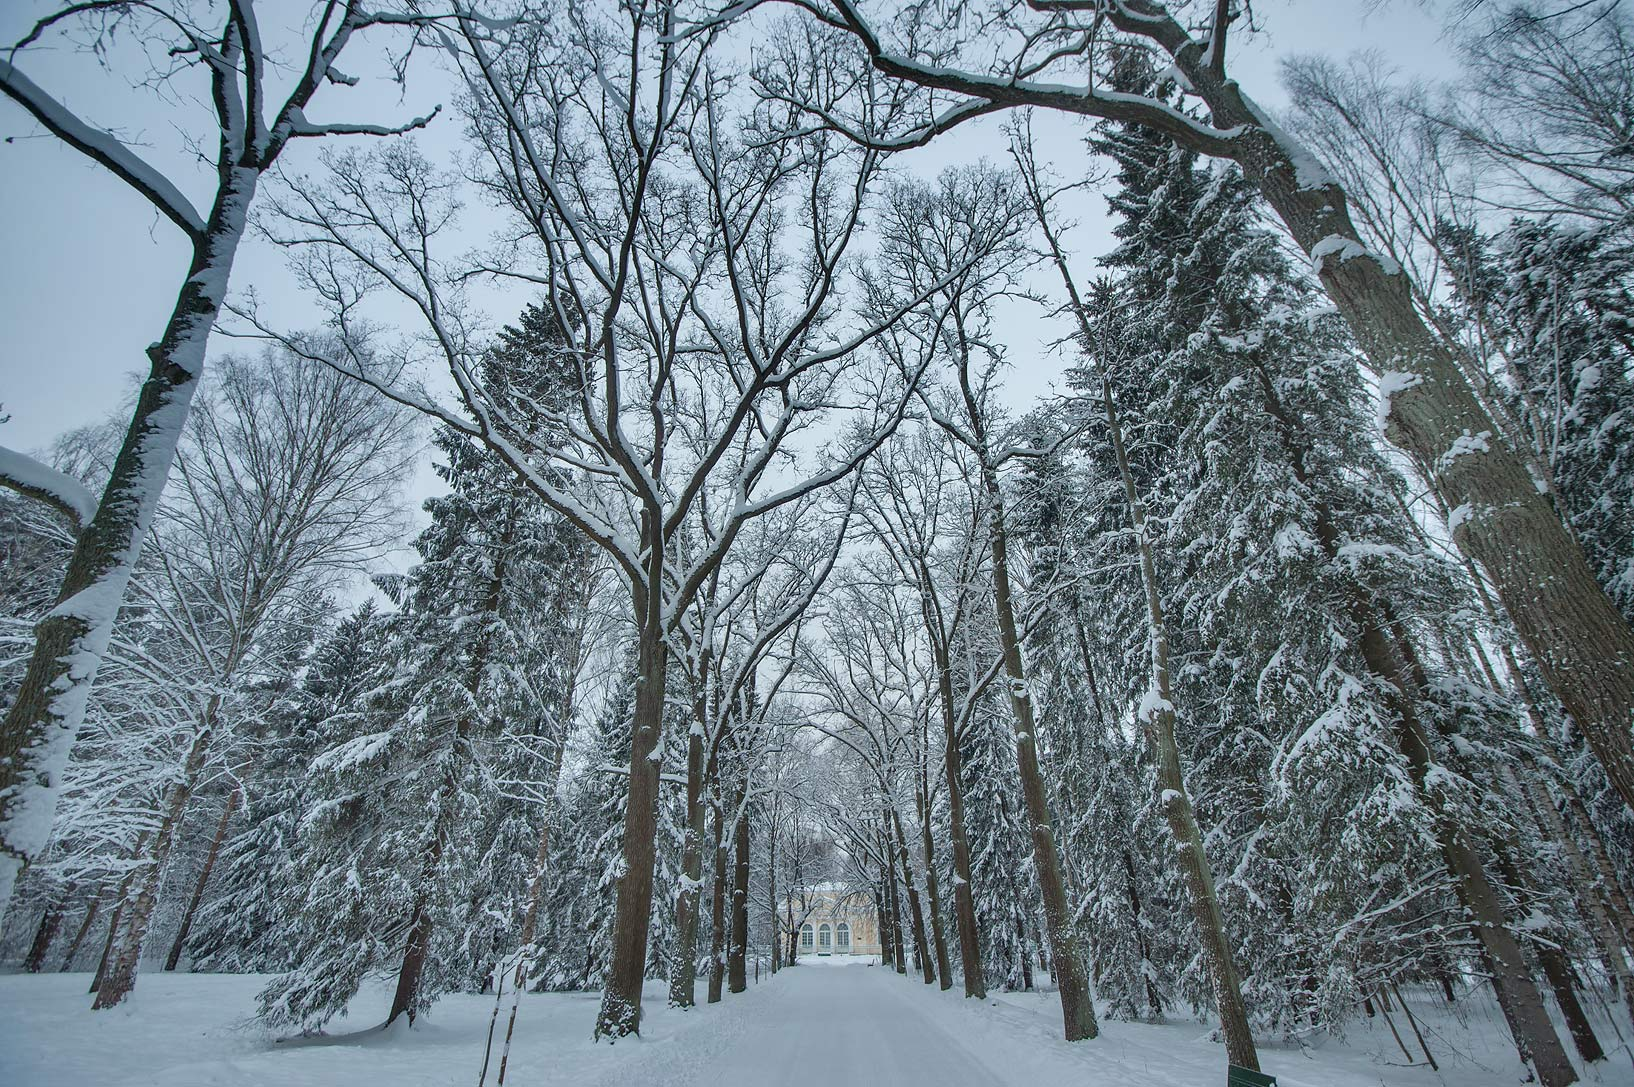 Snow at Green Woman Alley in Pavlovsk Park. Pavlovs, a suburb of St.Petersburg, Russia